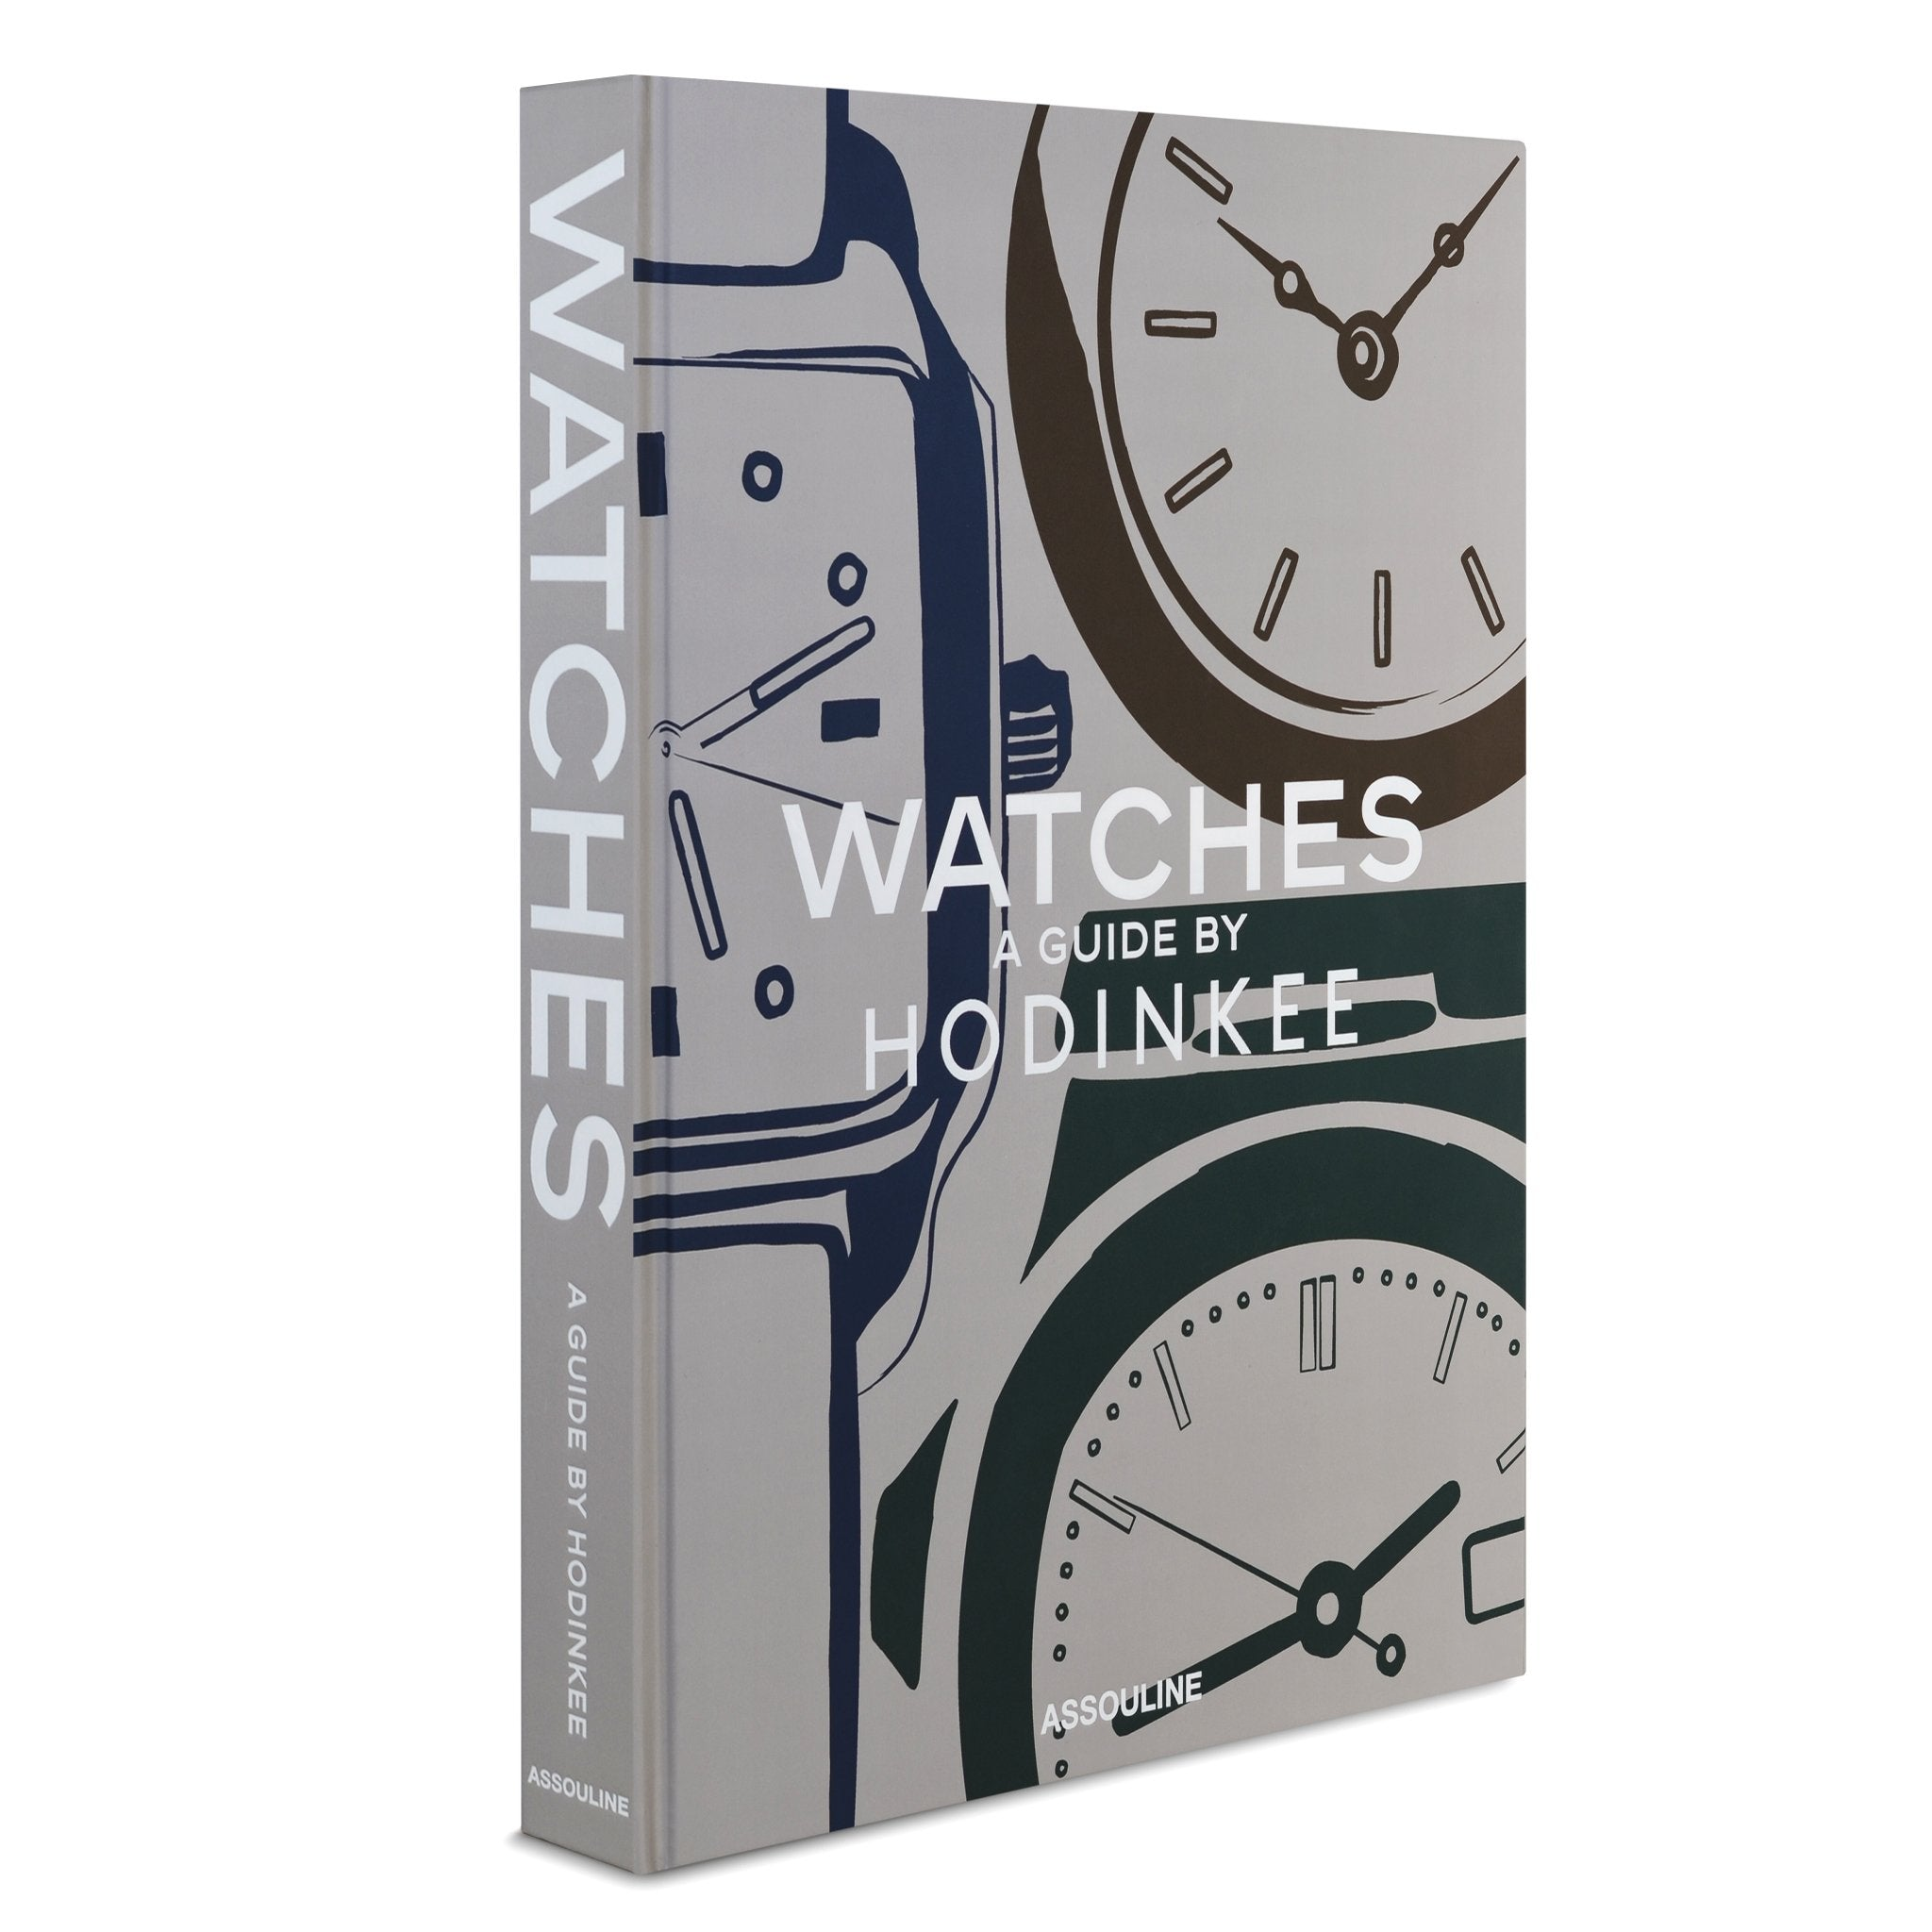 ASSOULINE Books Watches: A Guide by Hodinkee